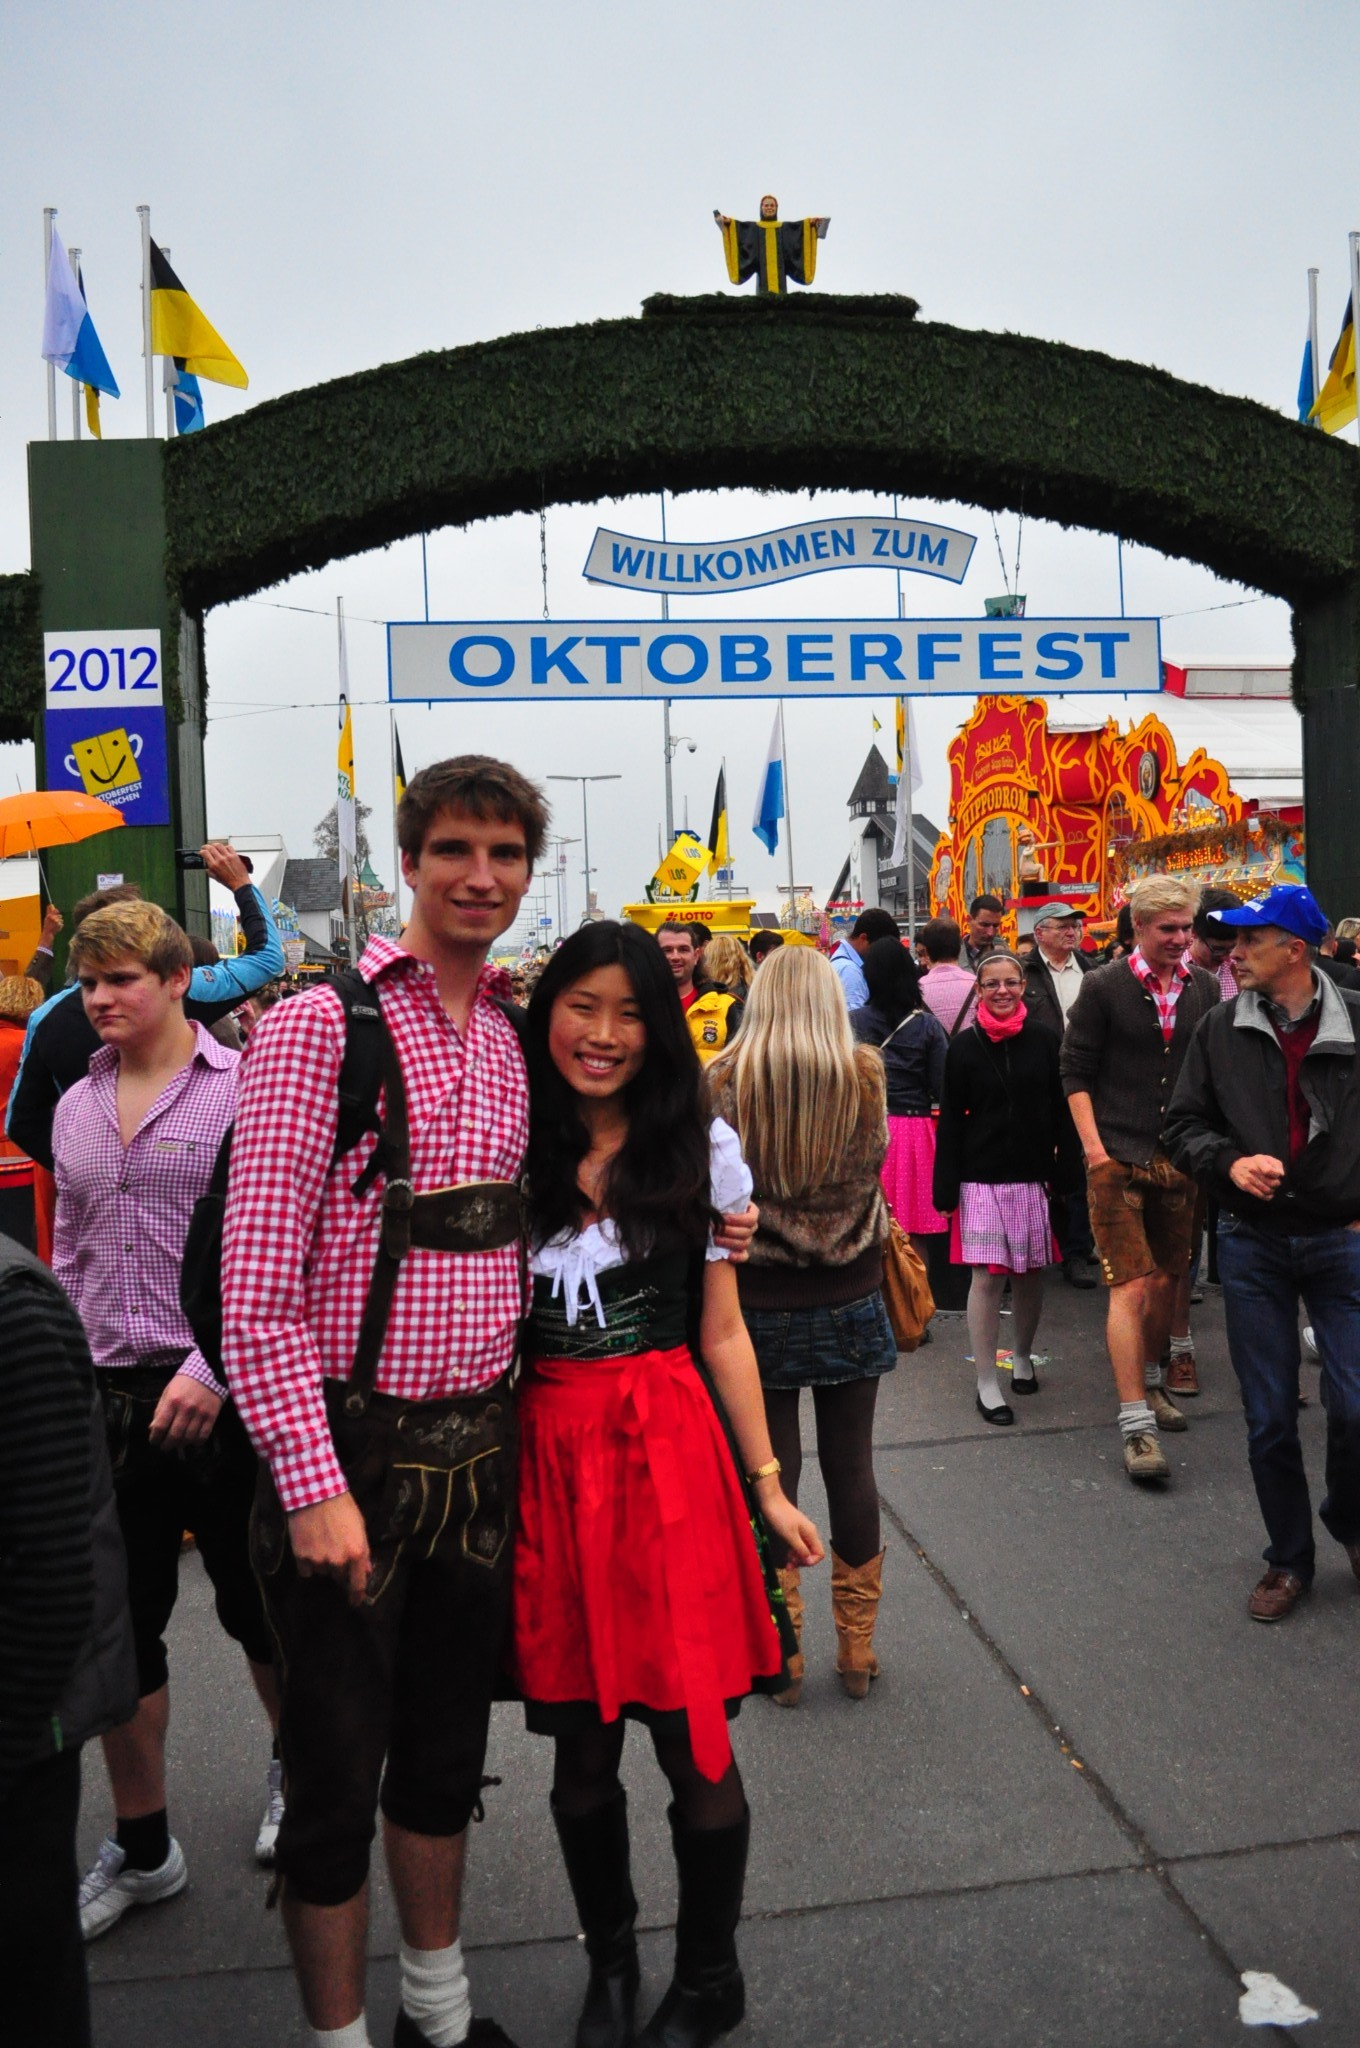 Munich, Germany2012 - After graduation we took our first big trip across Europe, ending with Oktoberfest celebrations in Munich.